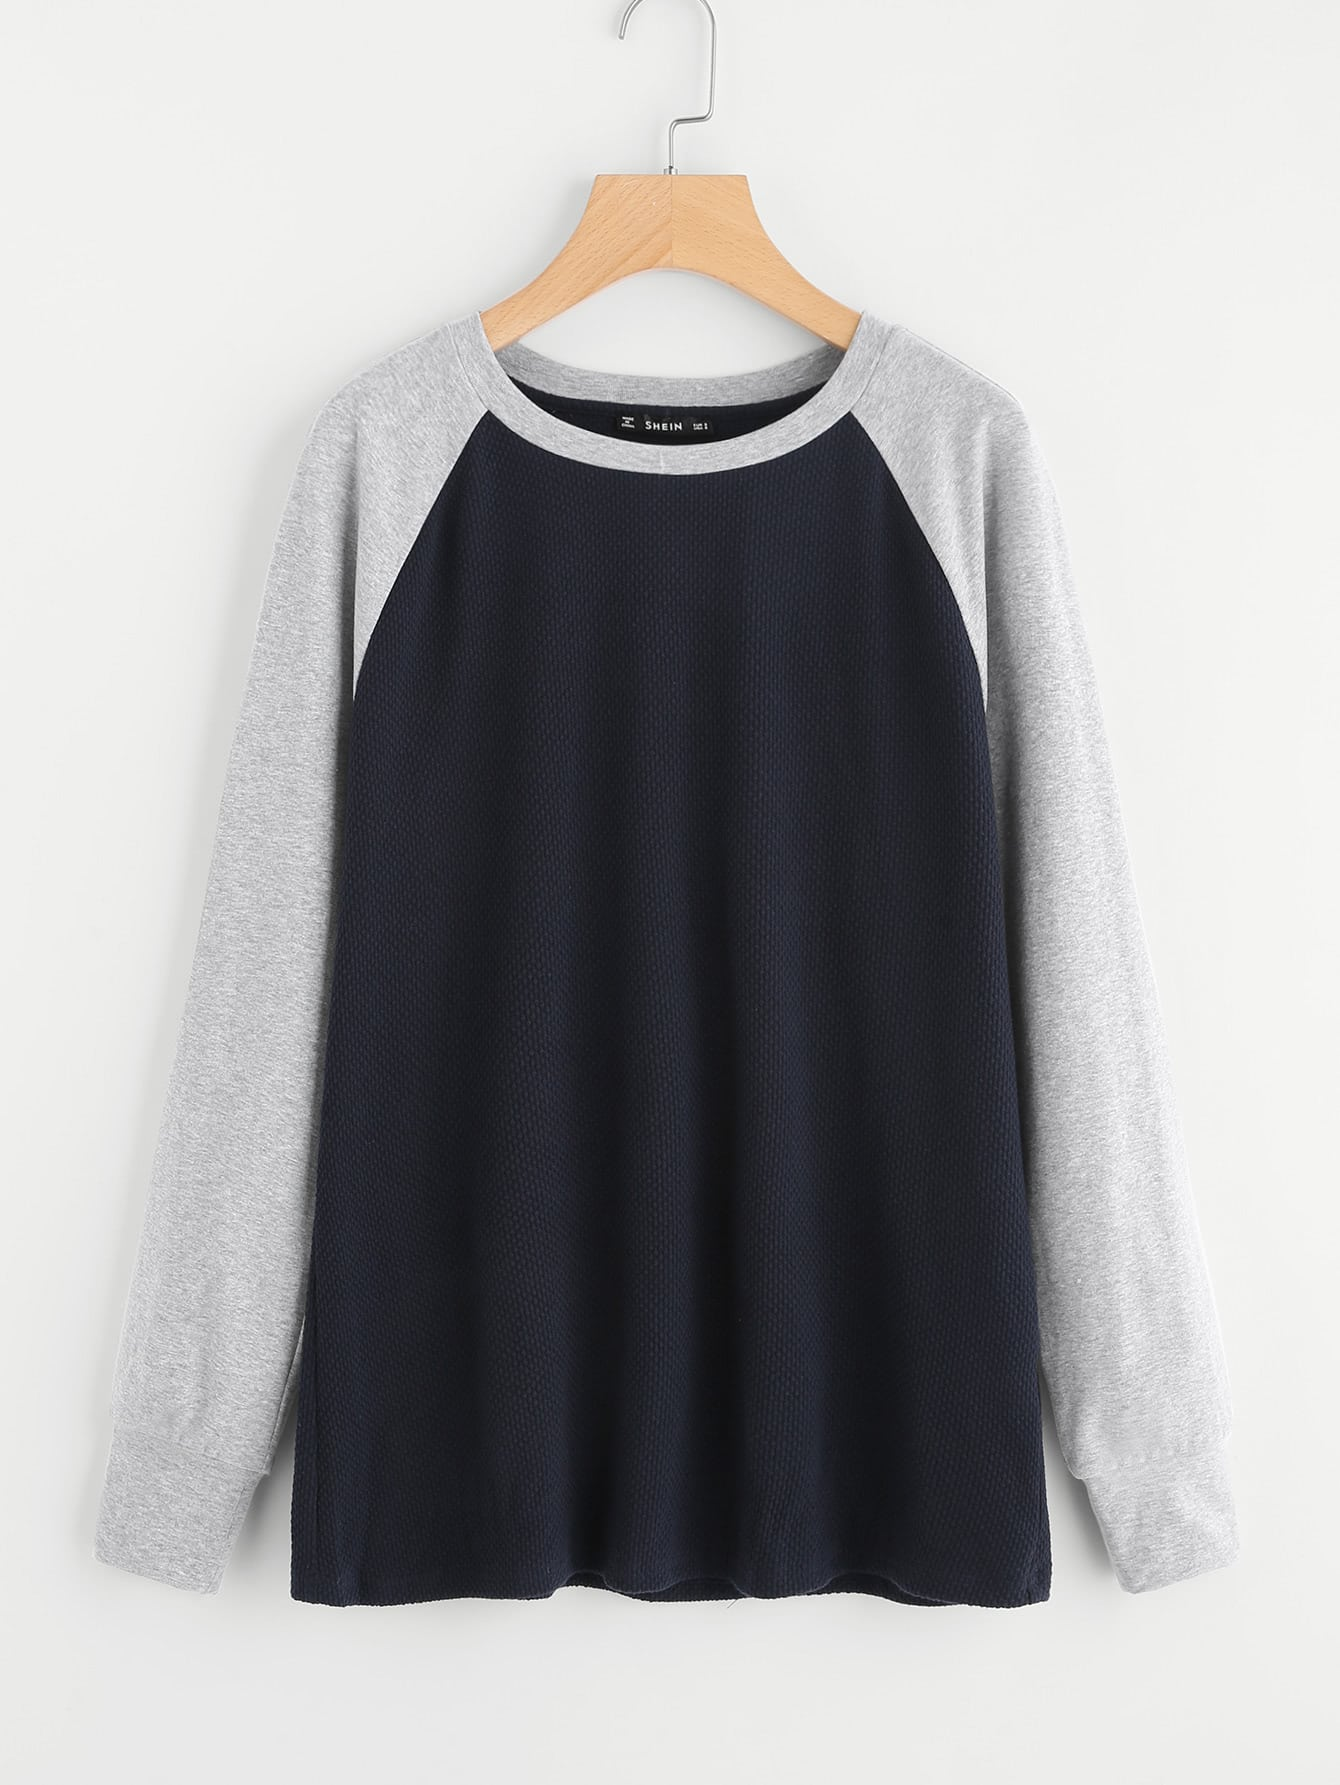 Elbow Patch Detail Contrast Raglan Sleeve T-shirt elbow sleeve contrast mesh pom pom detail blouse